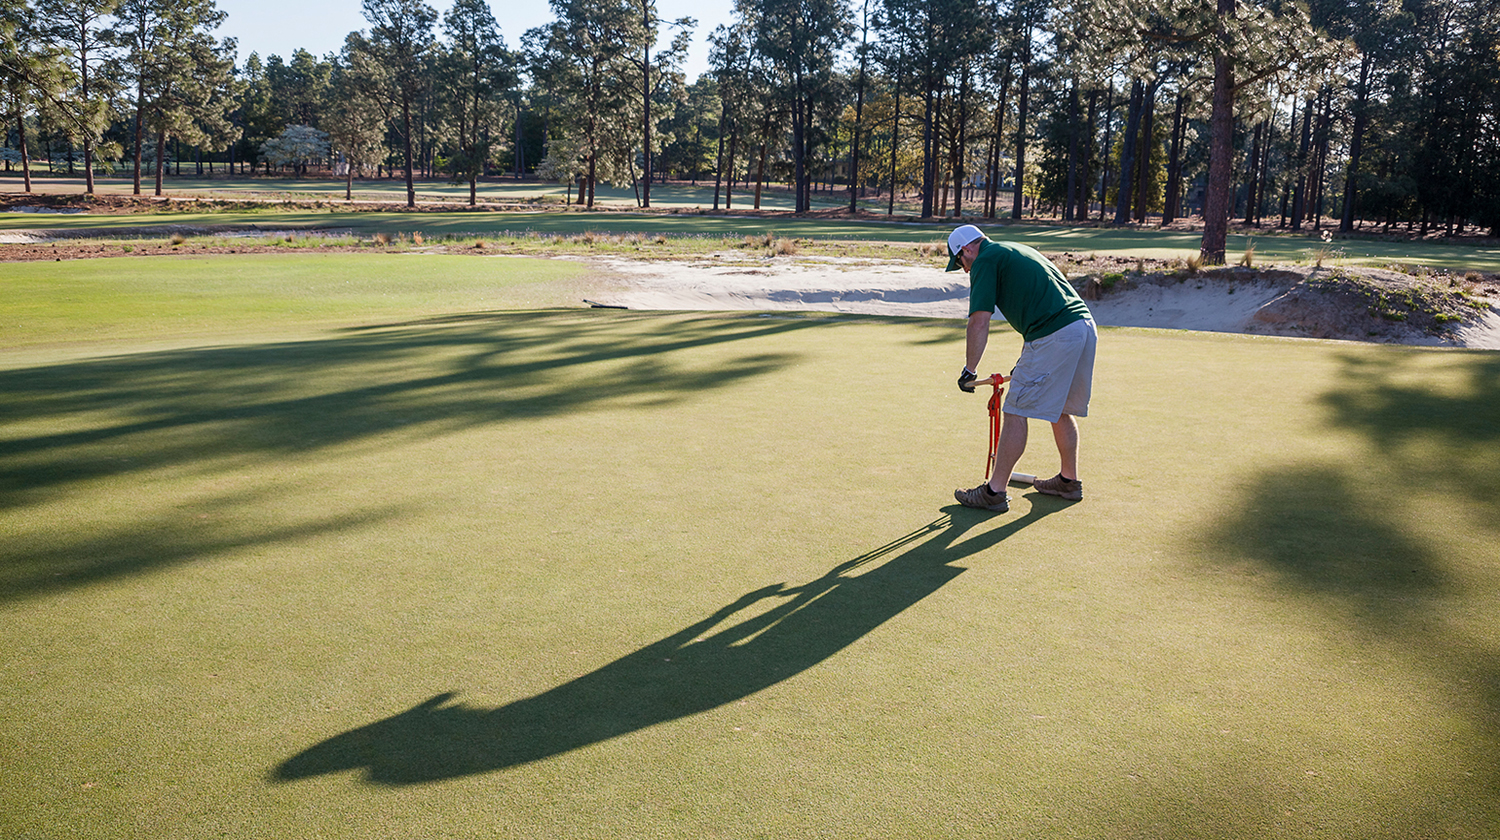 A golf course worker cuts a new hole on a putting green